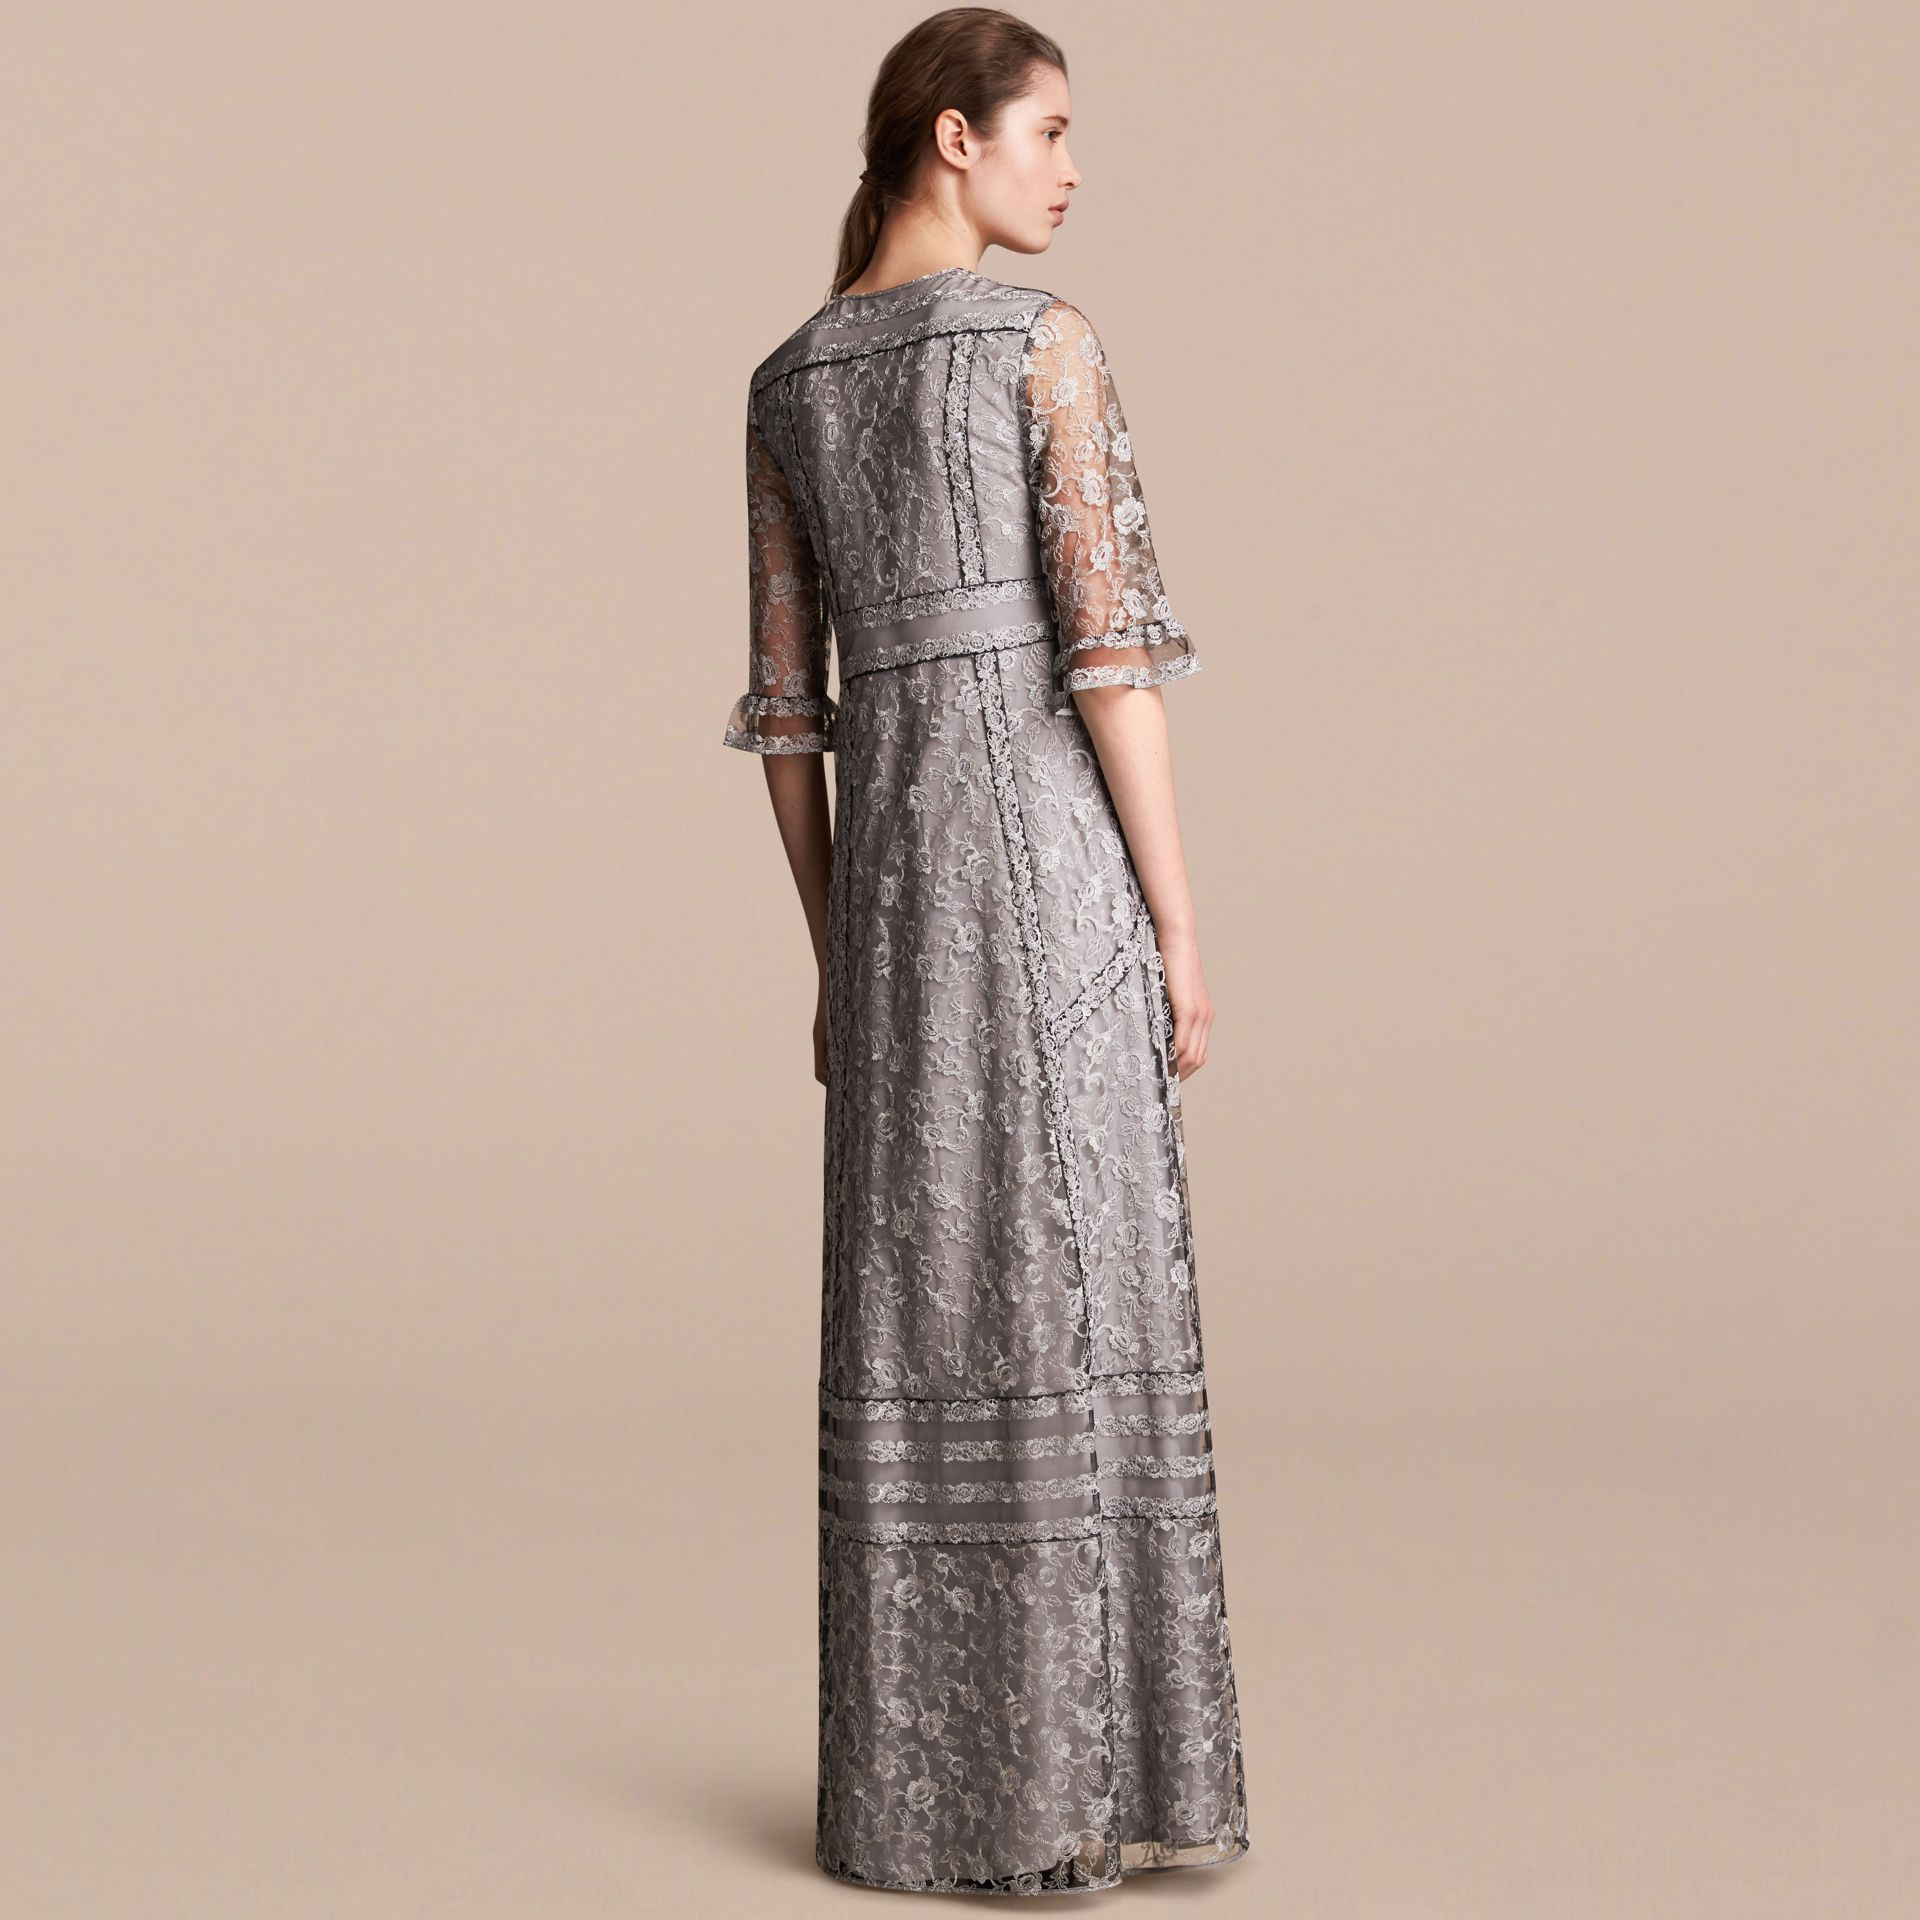 Floral Lace Tulle Dress in Silver - Women | Burberry - gallery image 3